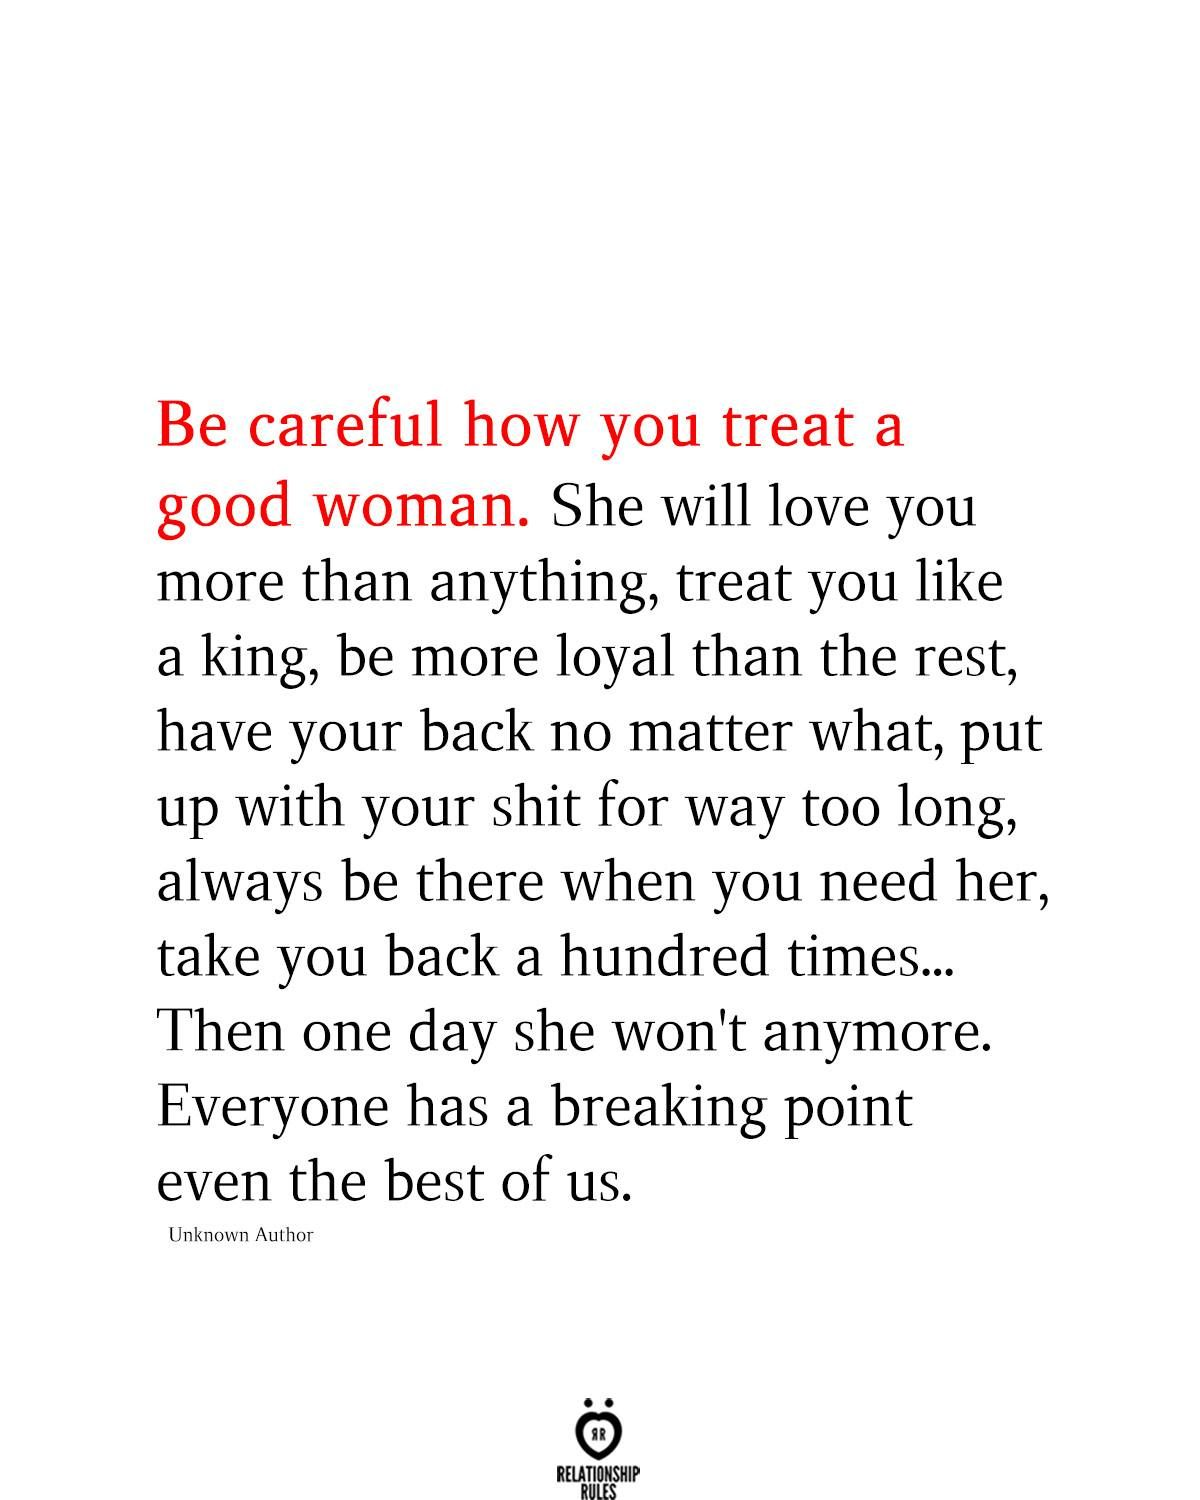 Be Careful How You Treat A Good Woman.